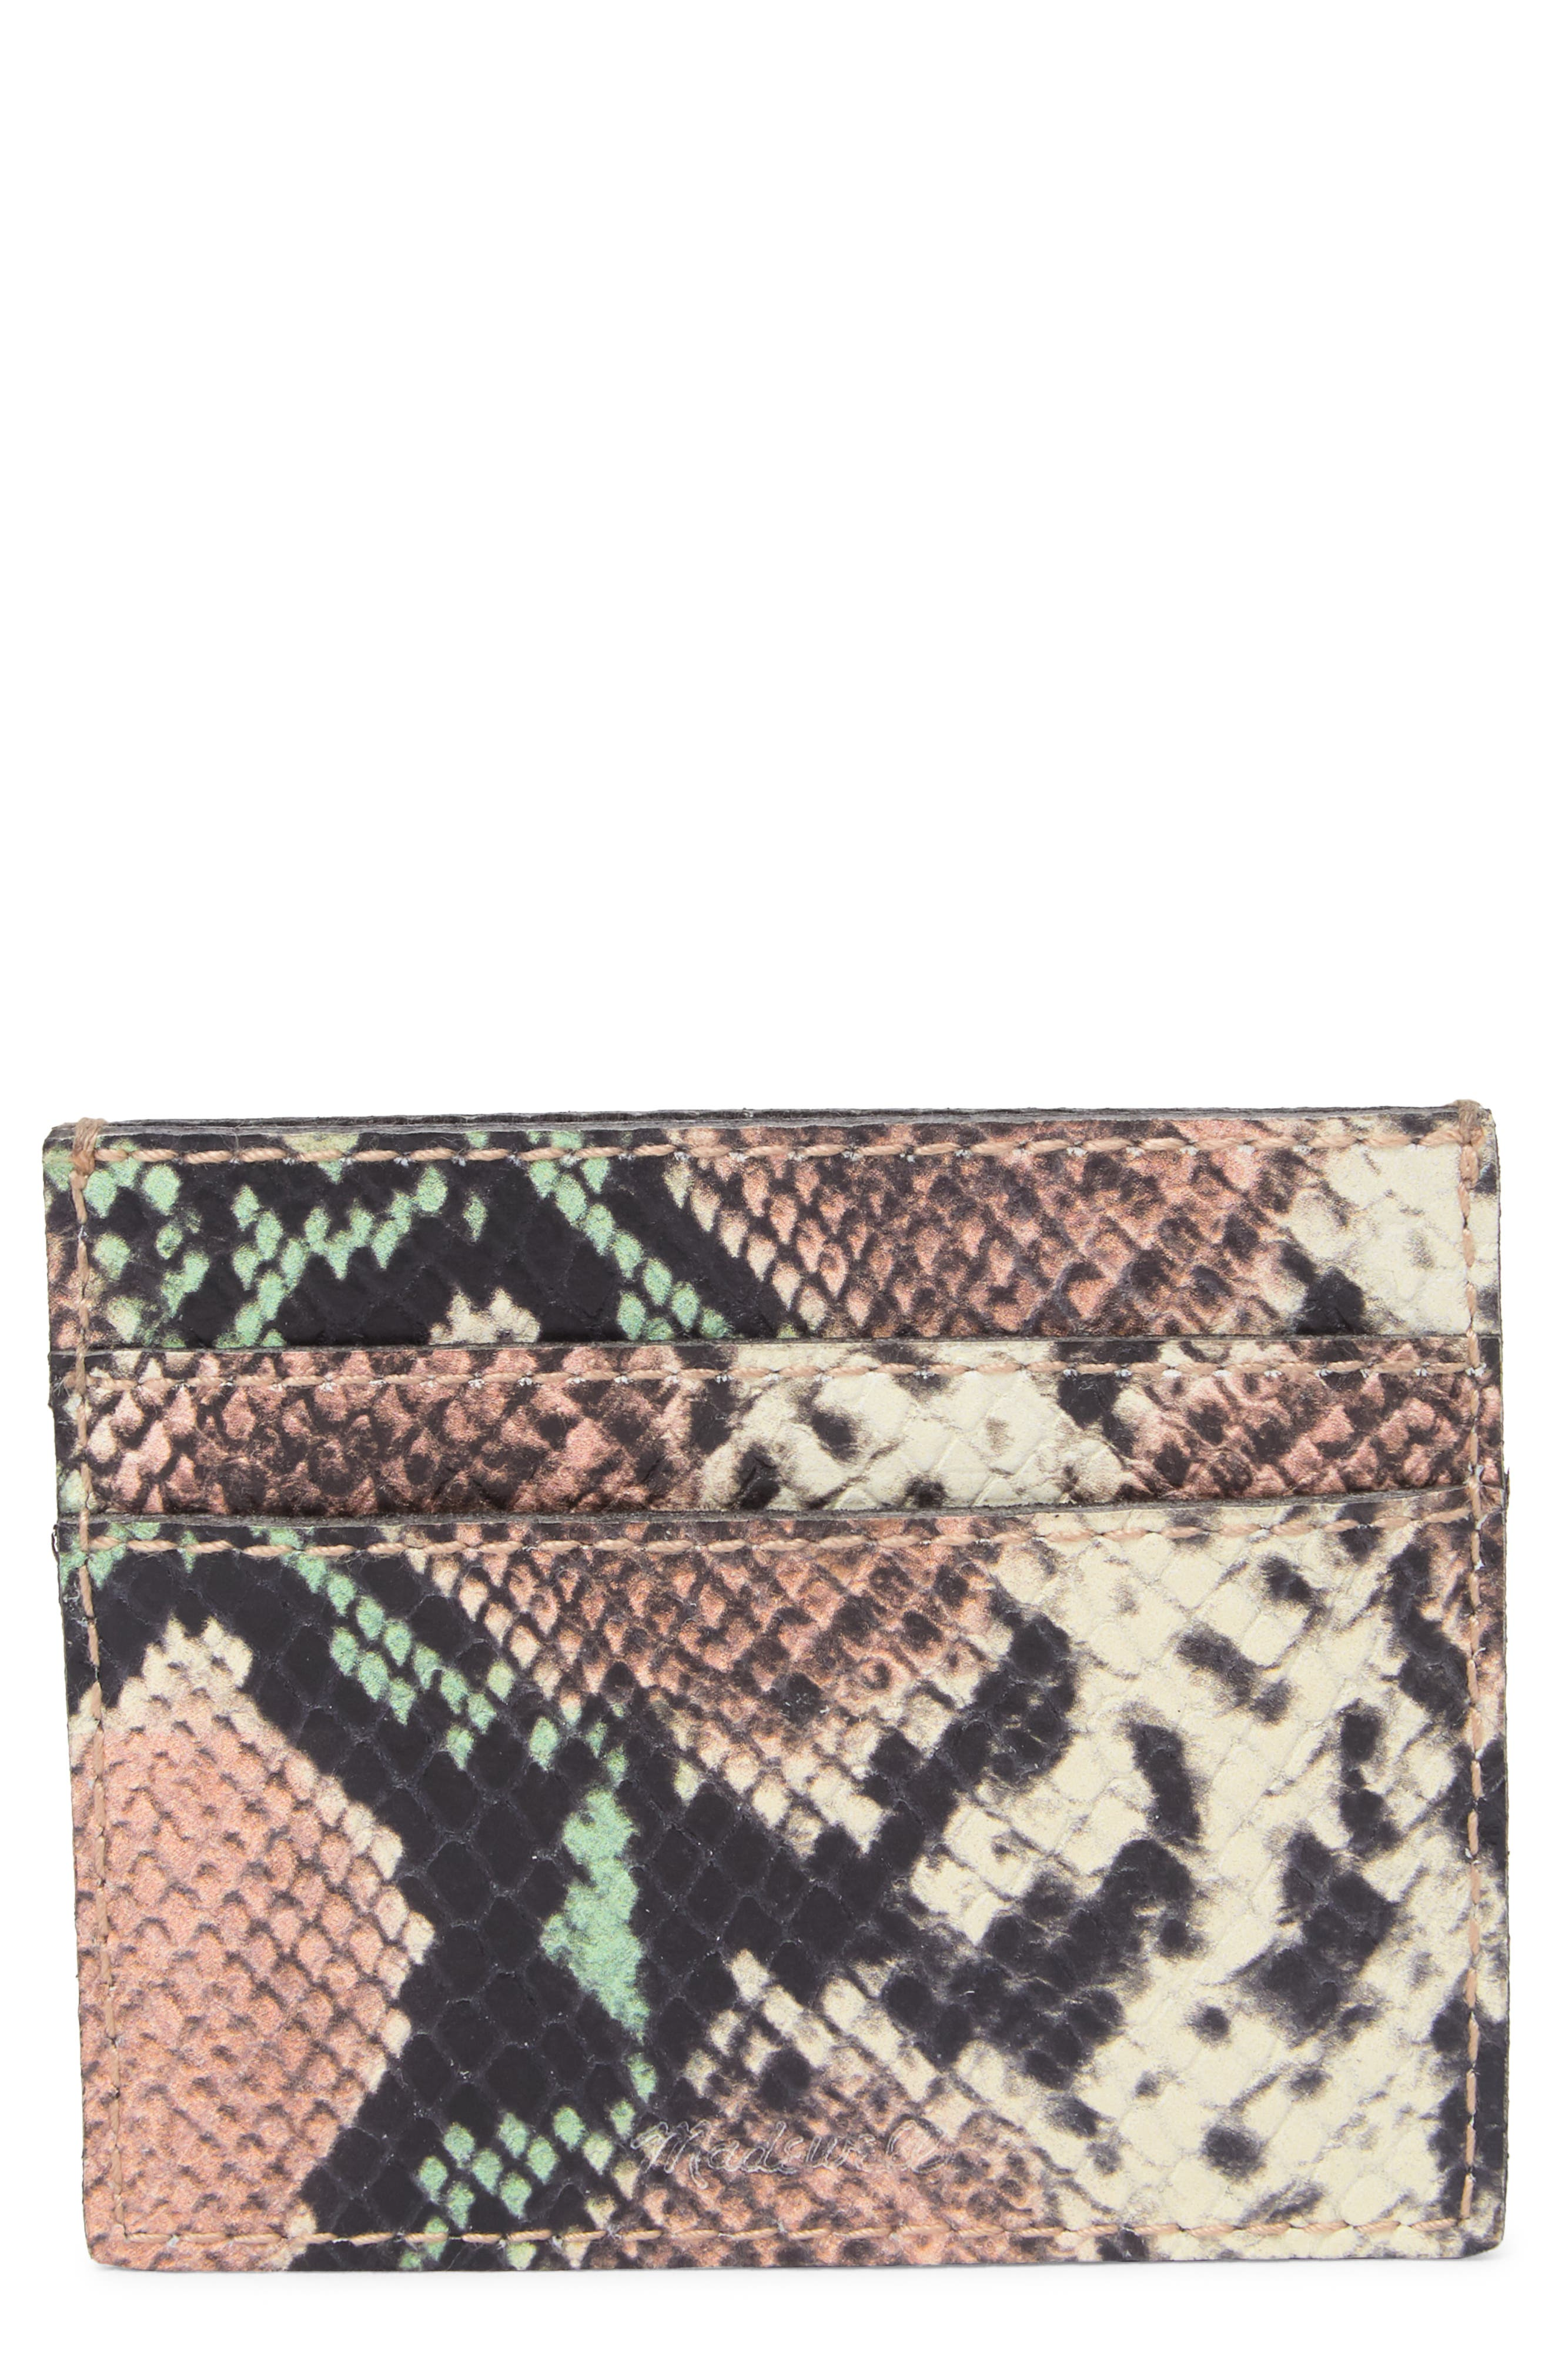 Image of Madewell Snake Skin Embossed Leather Card Case